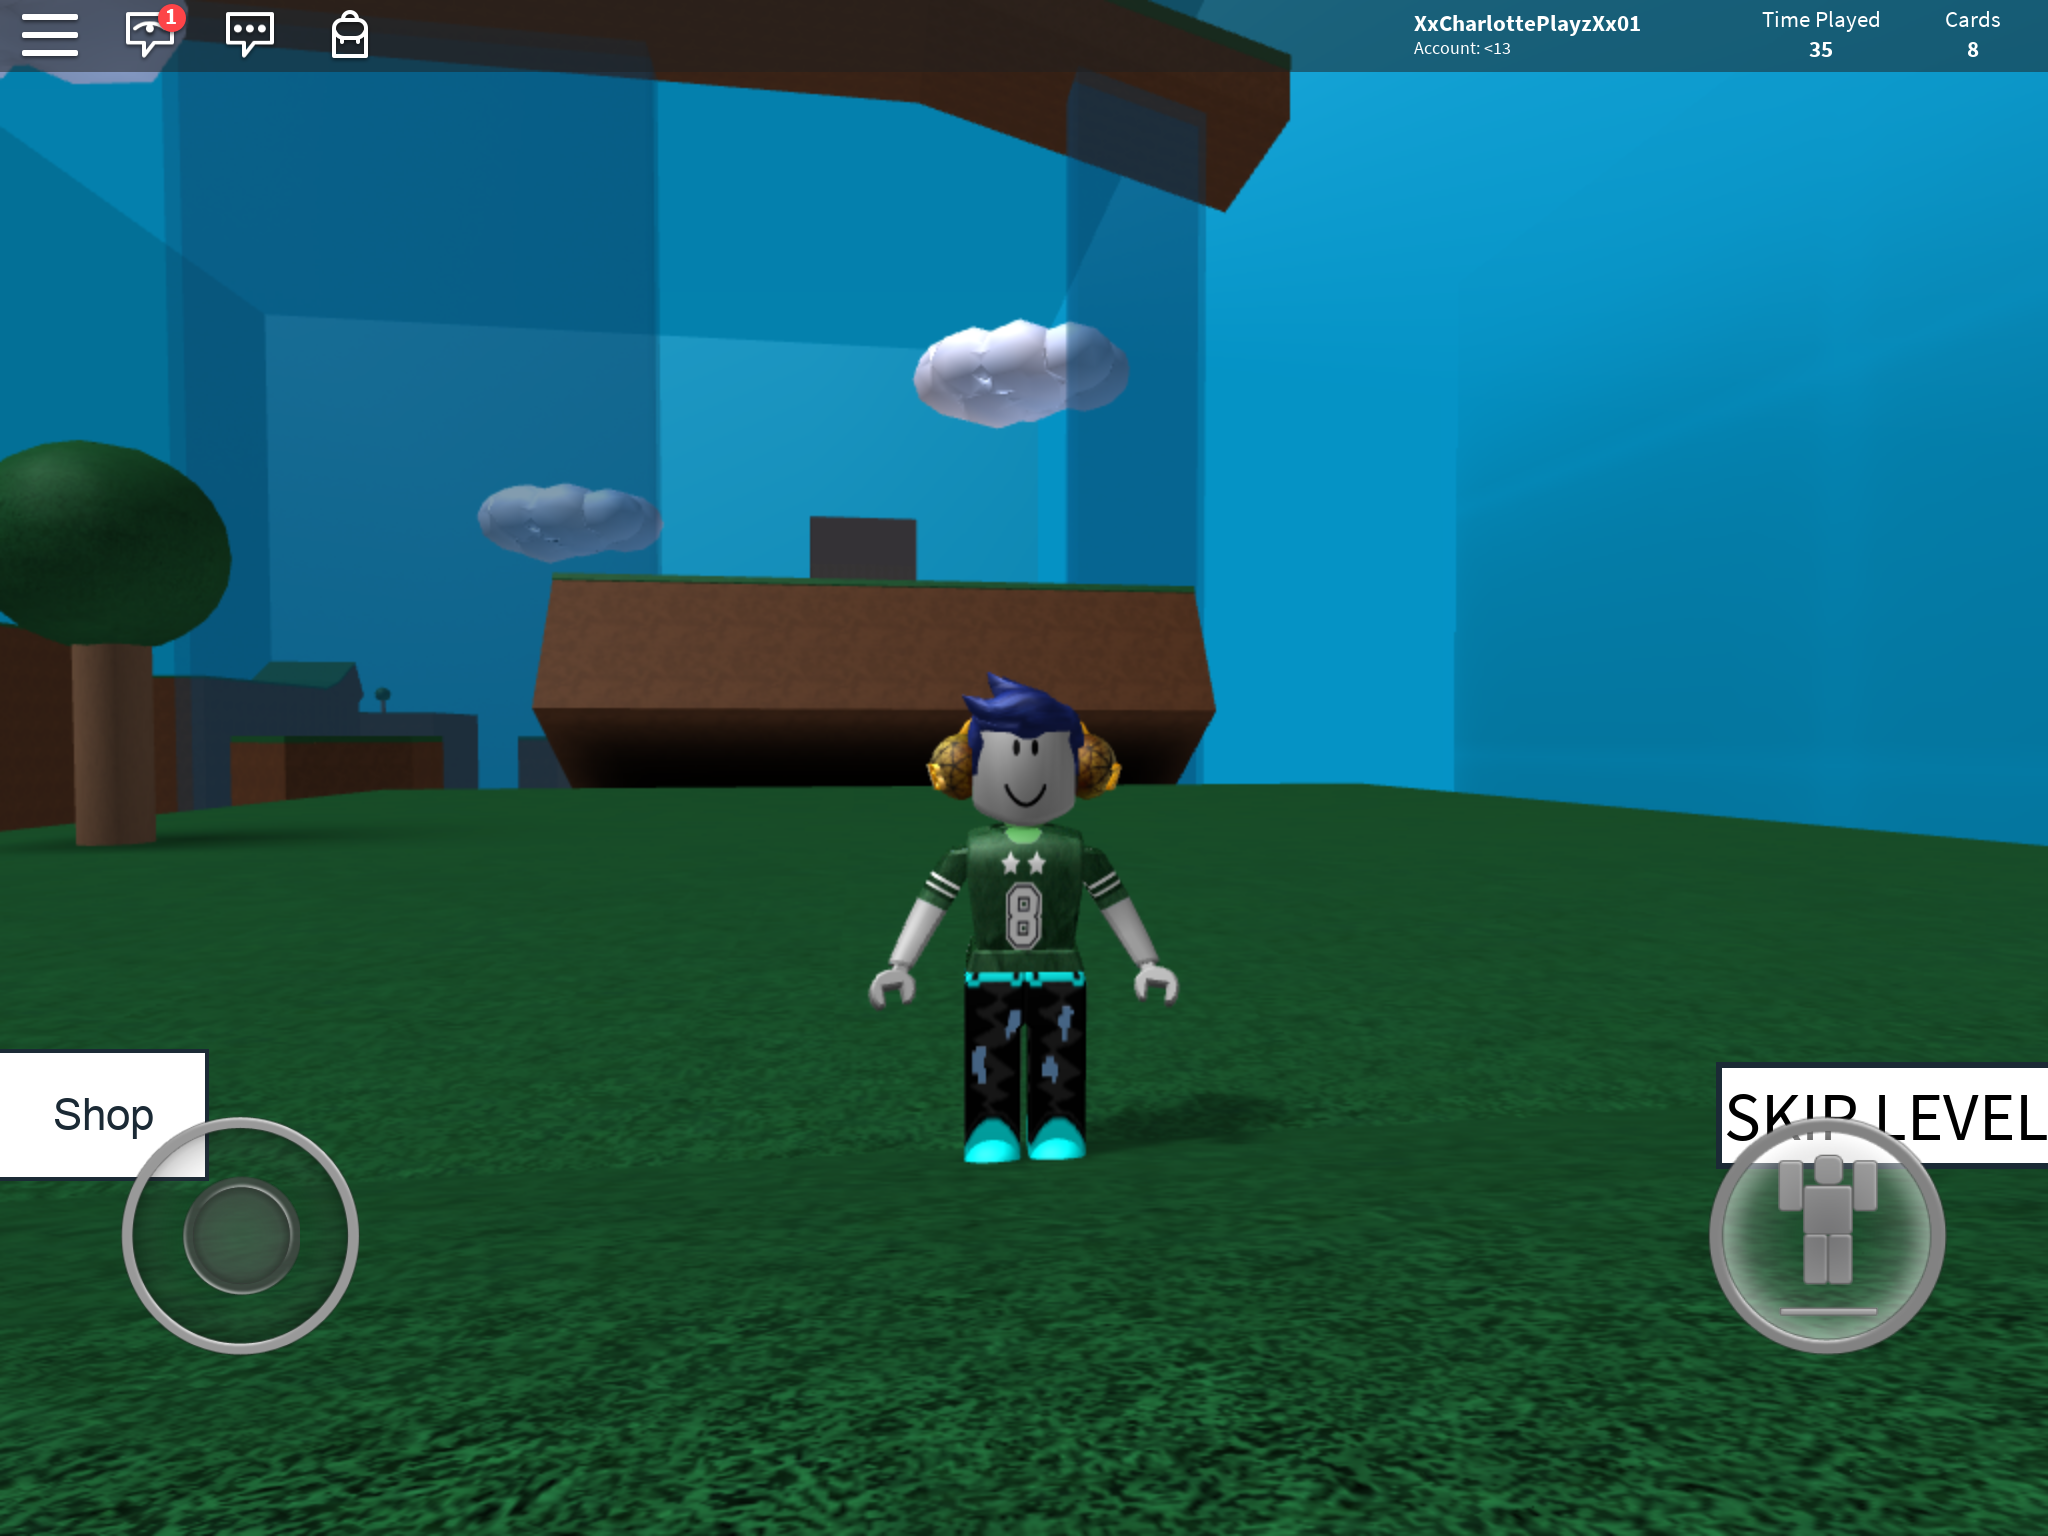 Pin by Fahriz on Roblox Give it to me, Shopping, Accounting